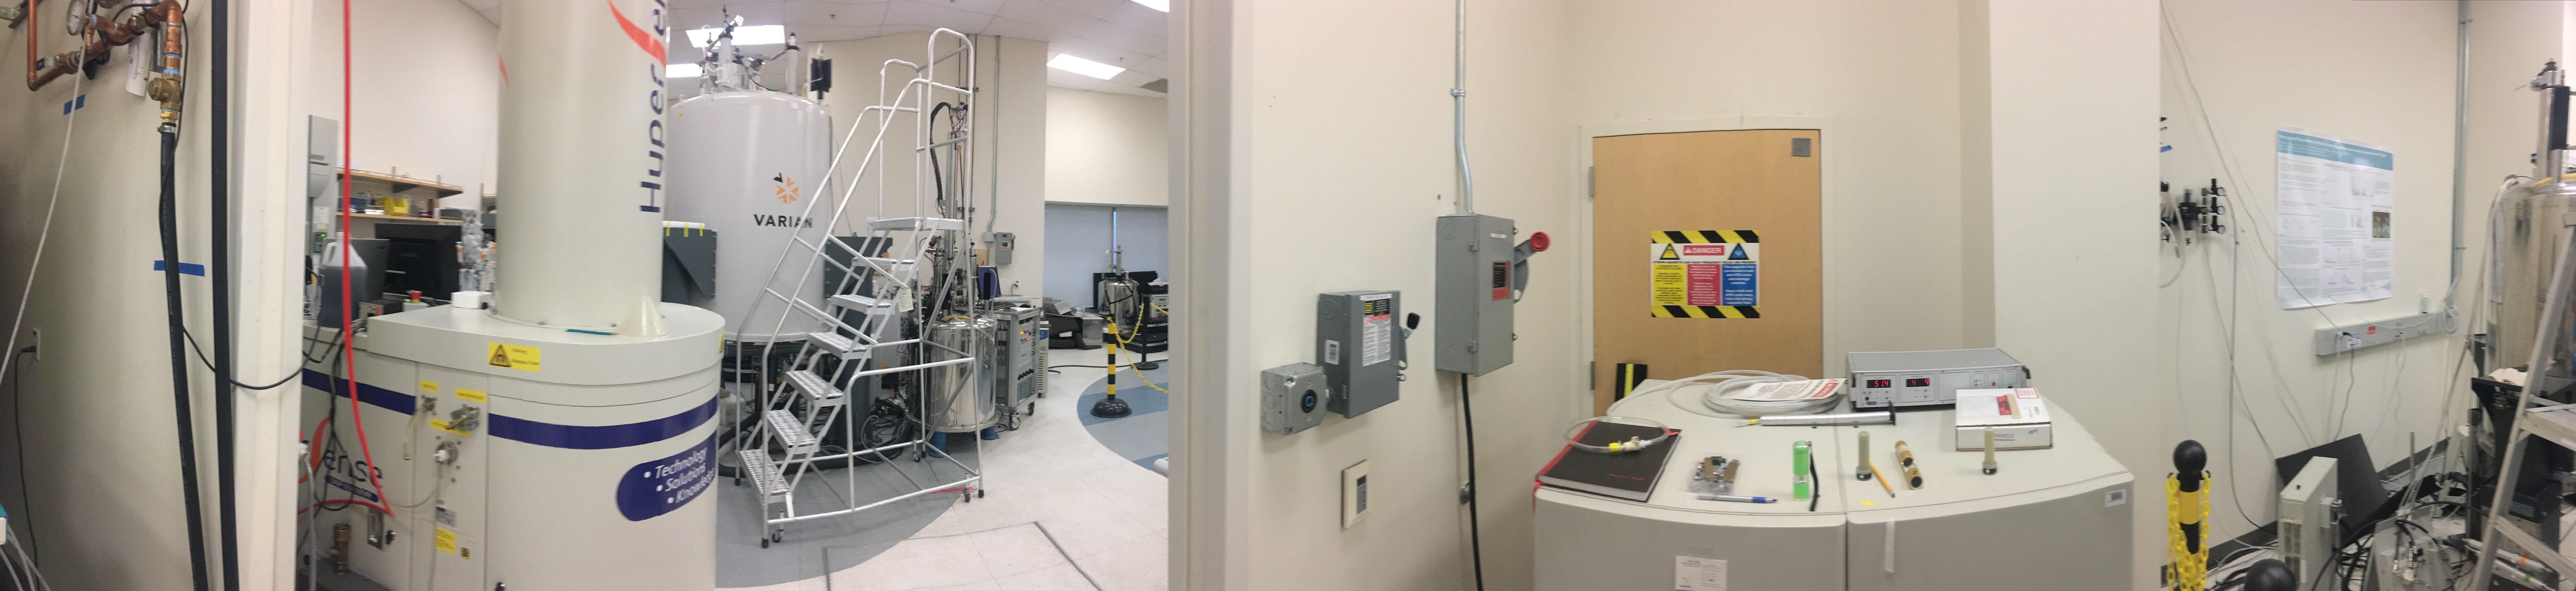 Preclinical MR Imaging and Spectroscopy Lab | UCSF Radiology